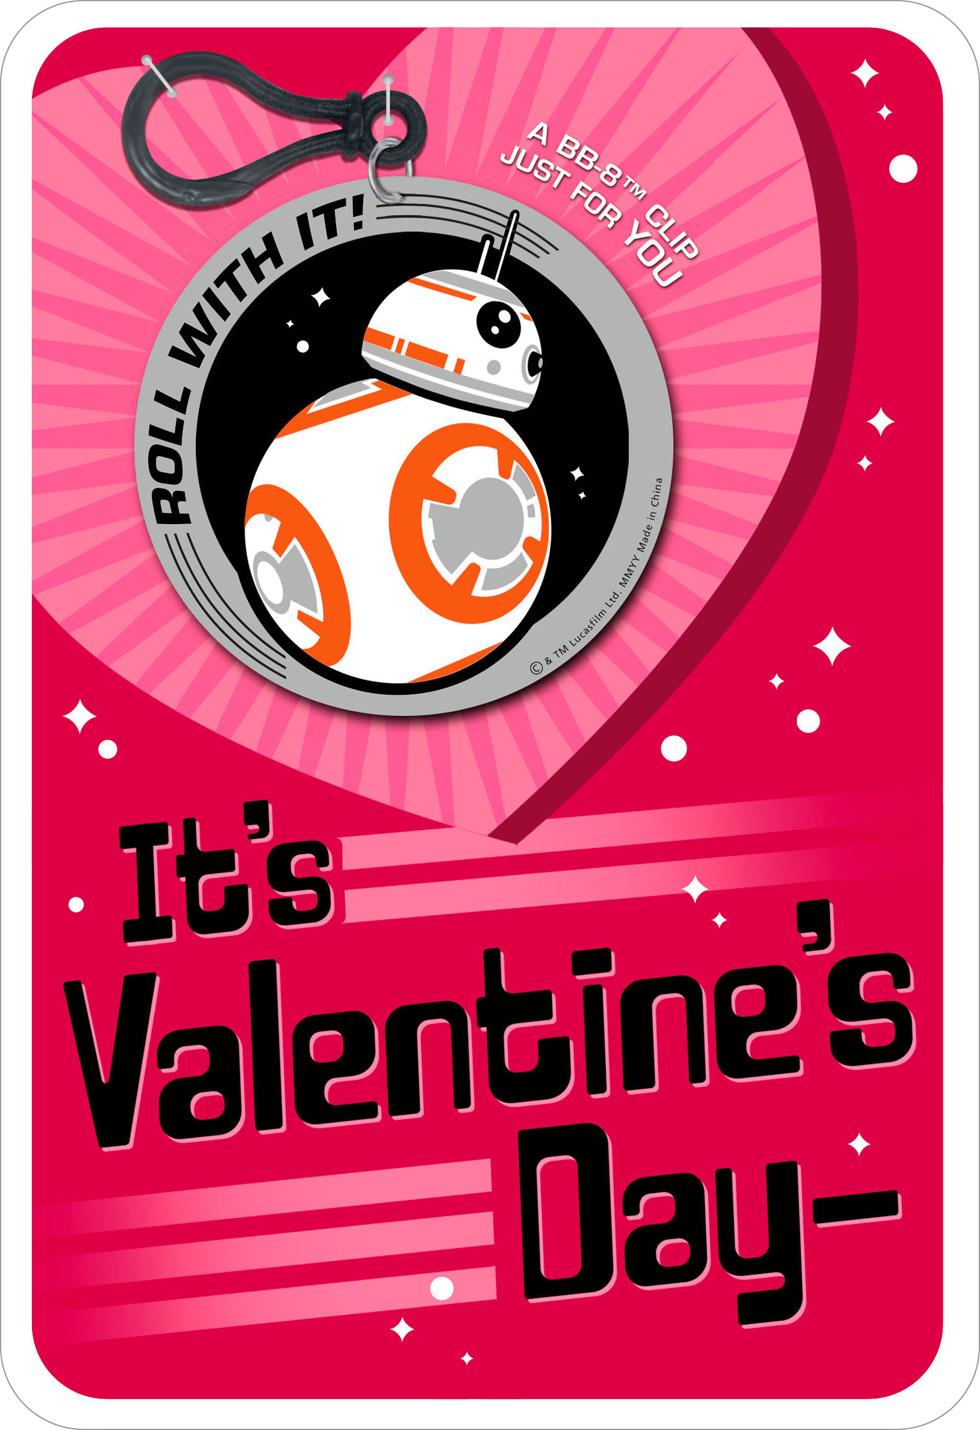 Star Wars Bb 8 Droid Jokes Valentine S Day Card With